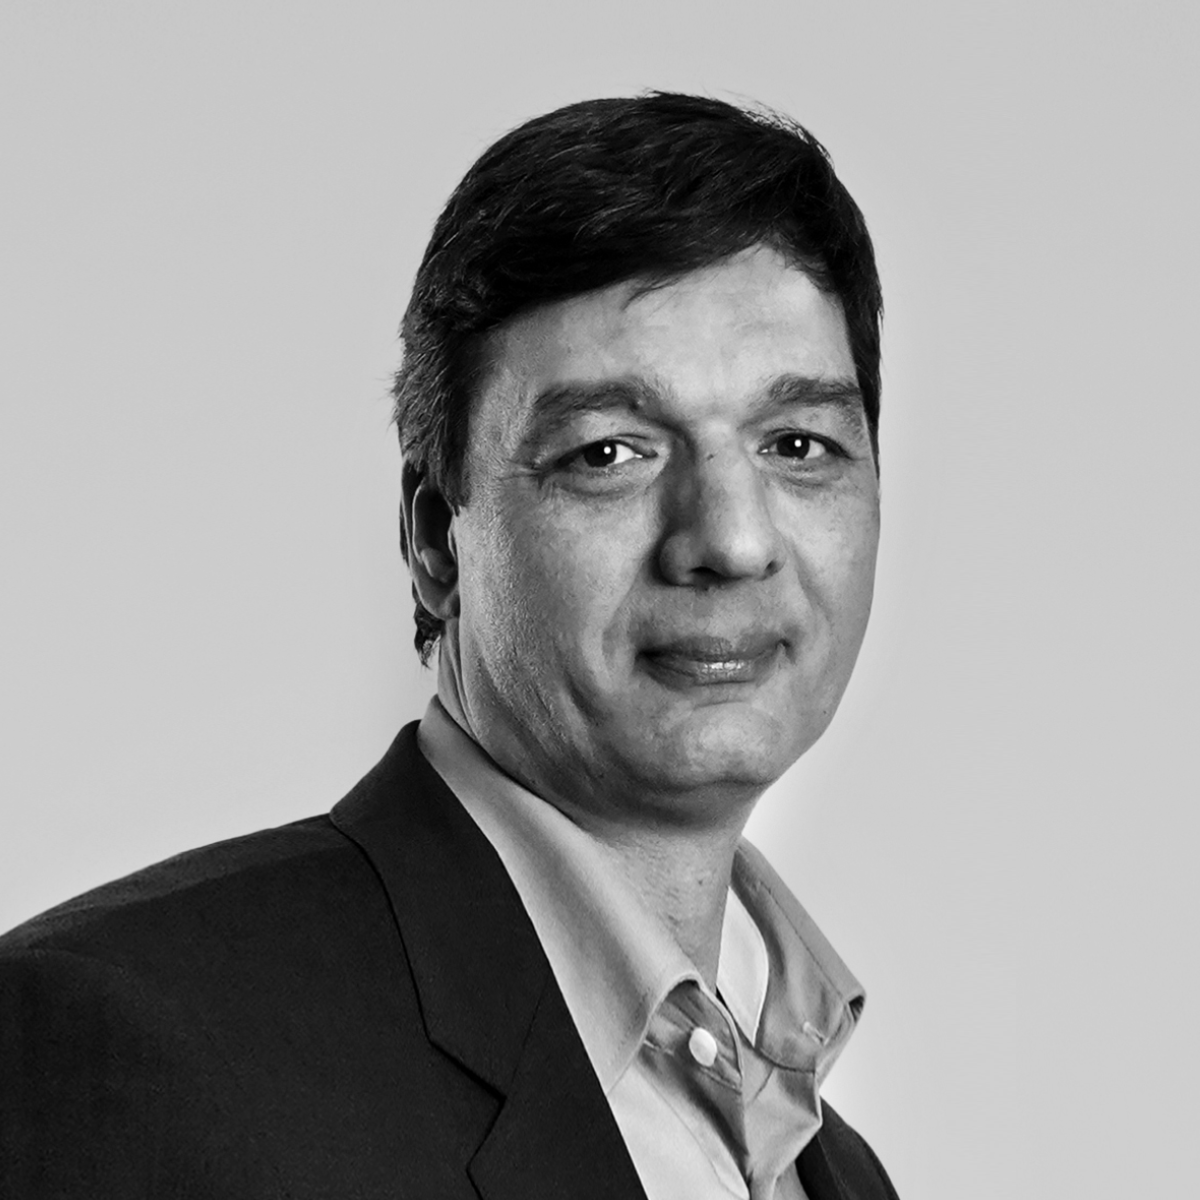 Karim Khorshed, Chief Executive Officer